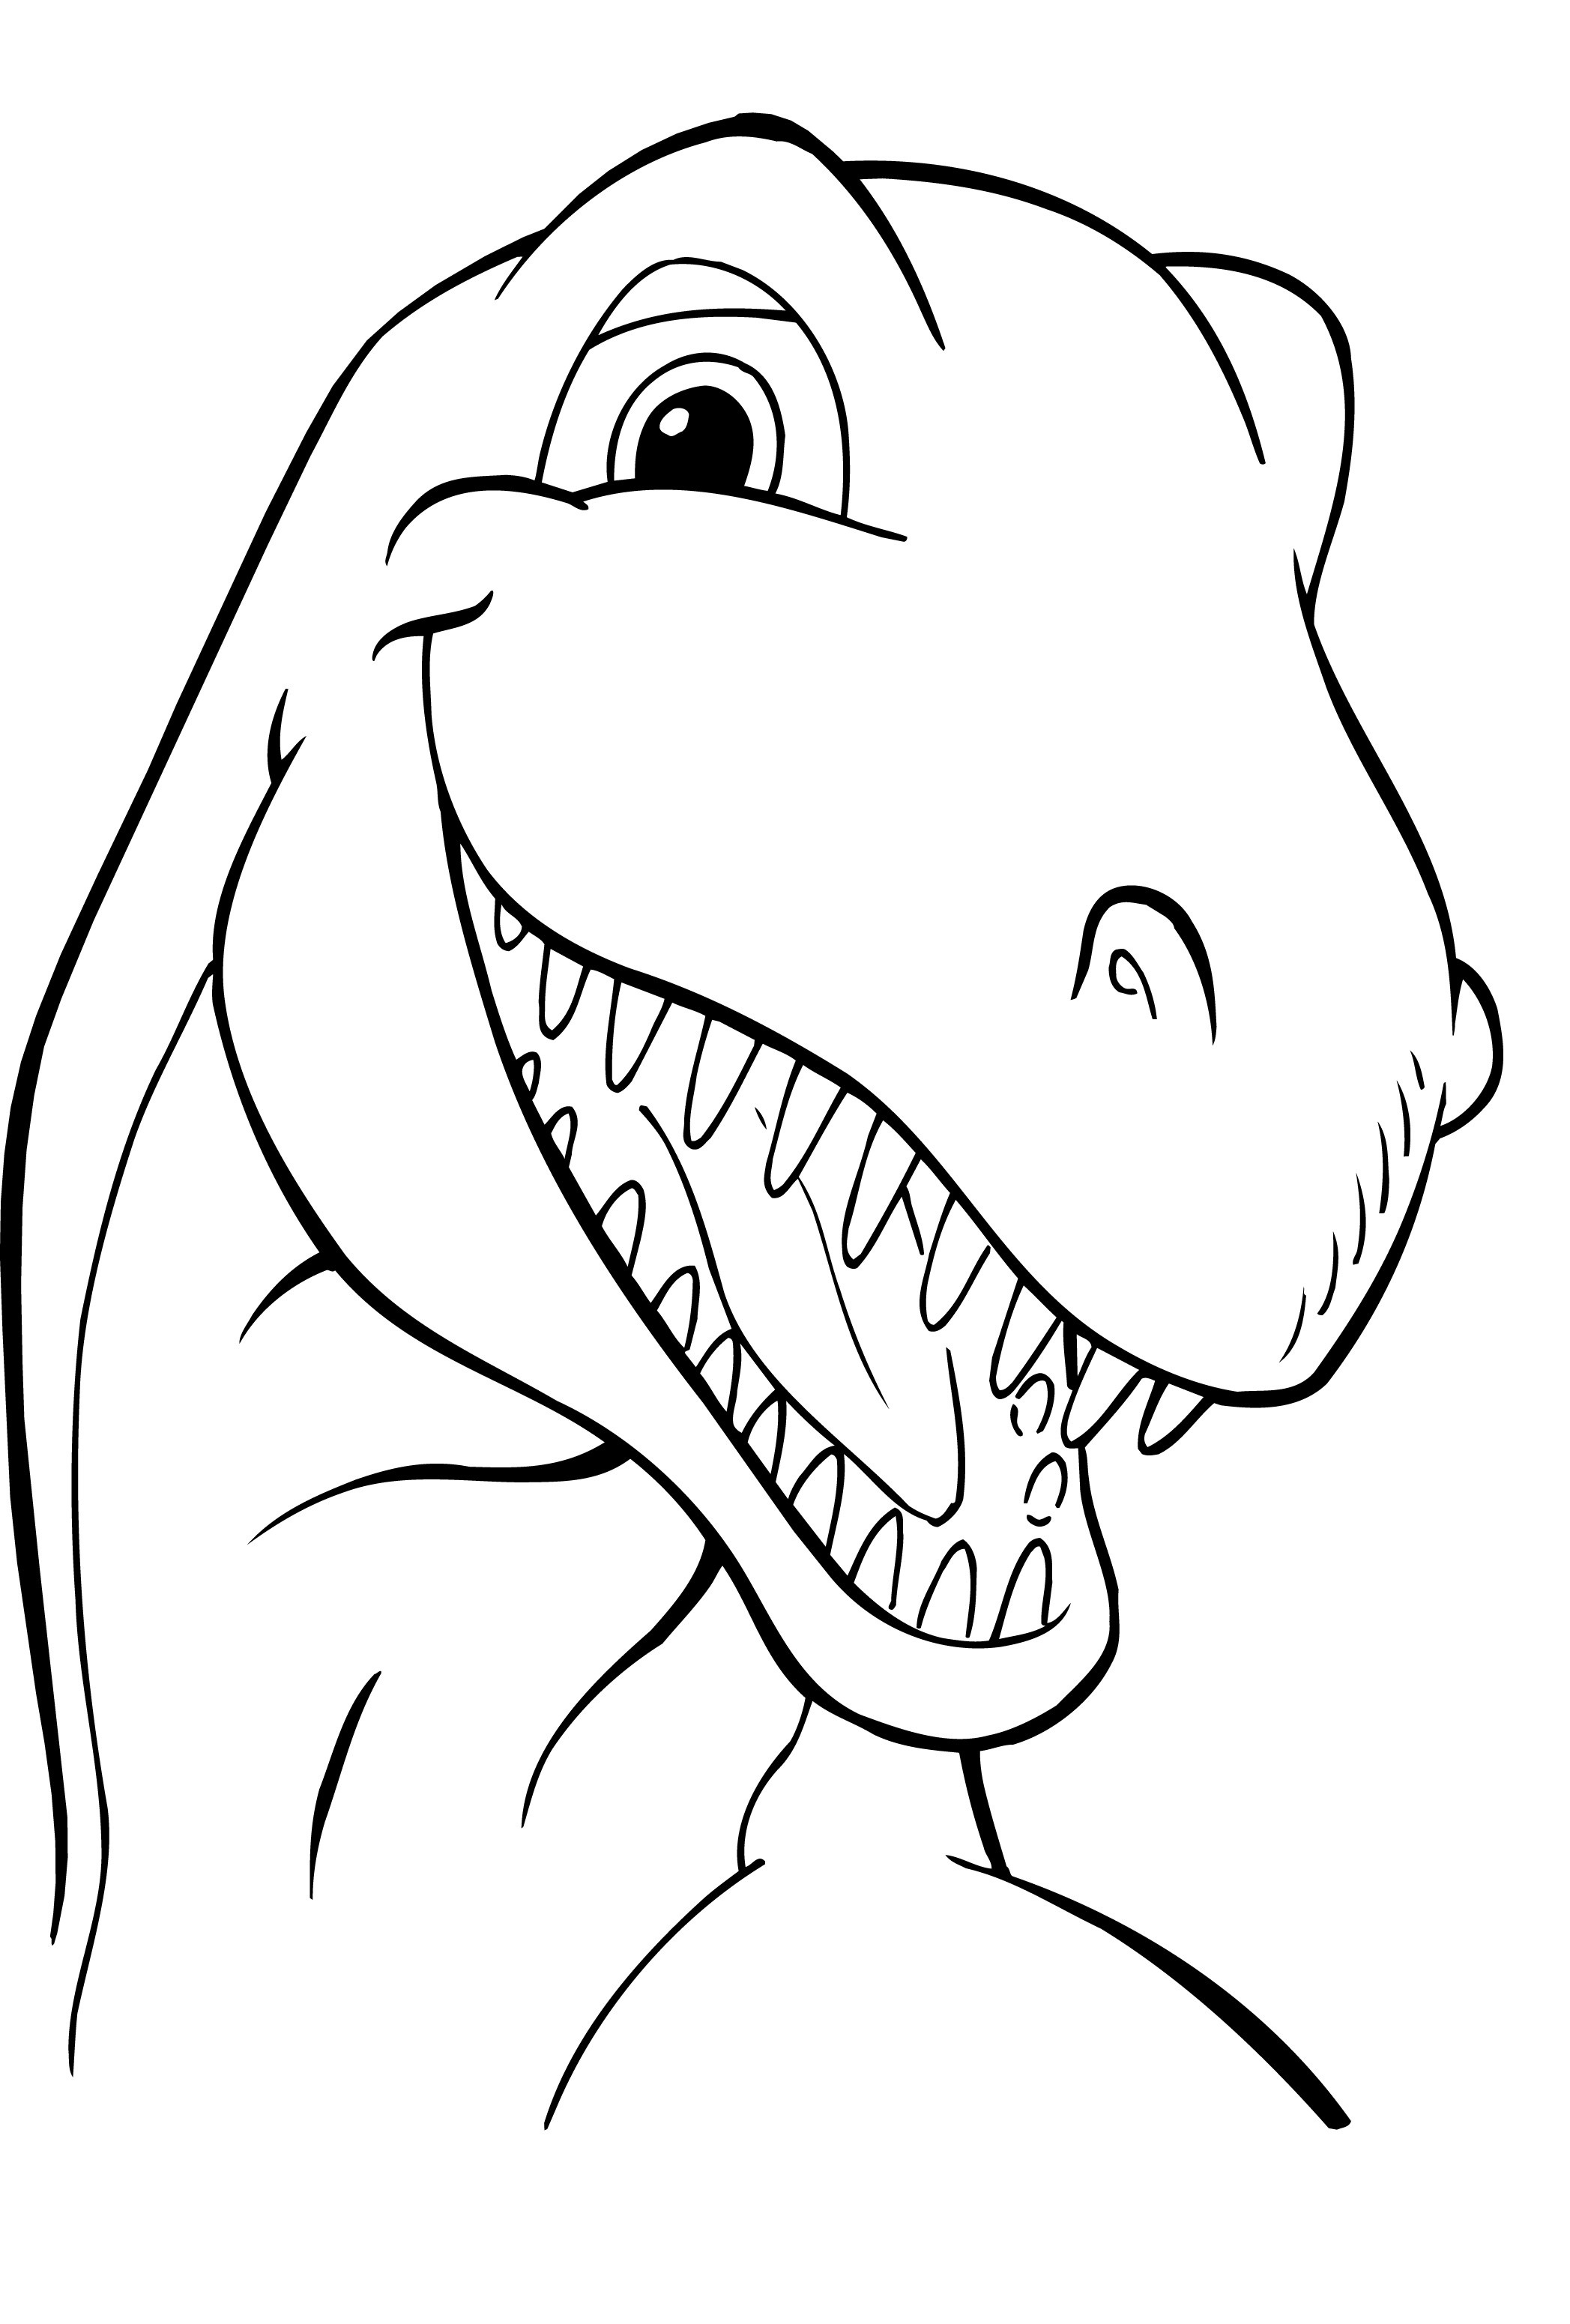 kids dinosaur coloring pages - photo#7